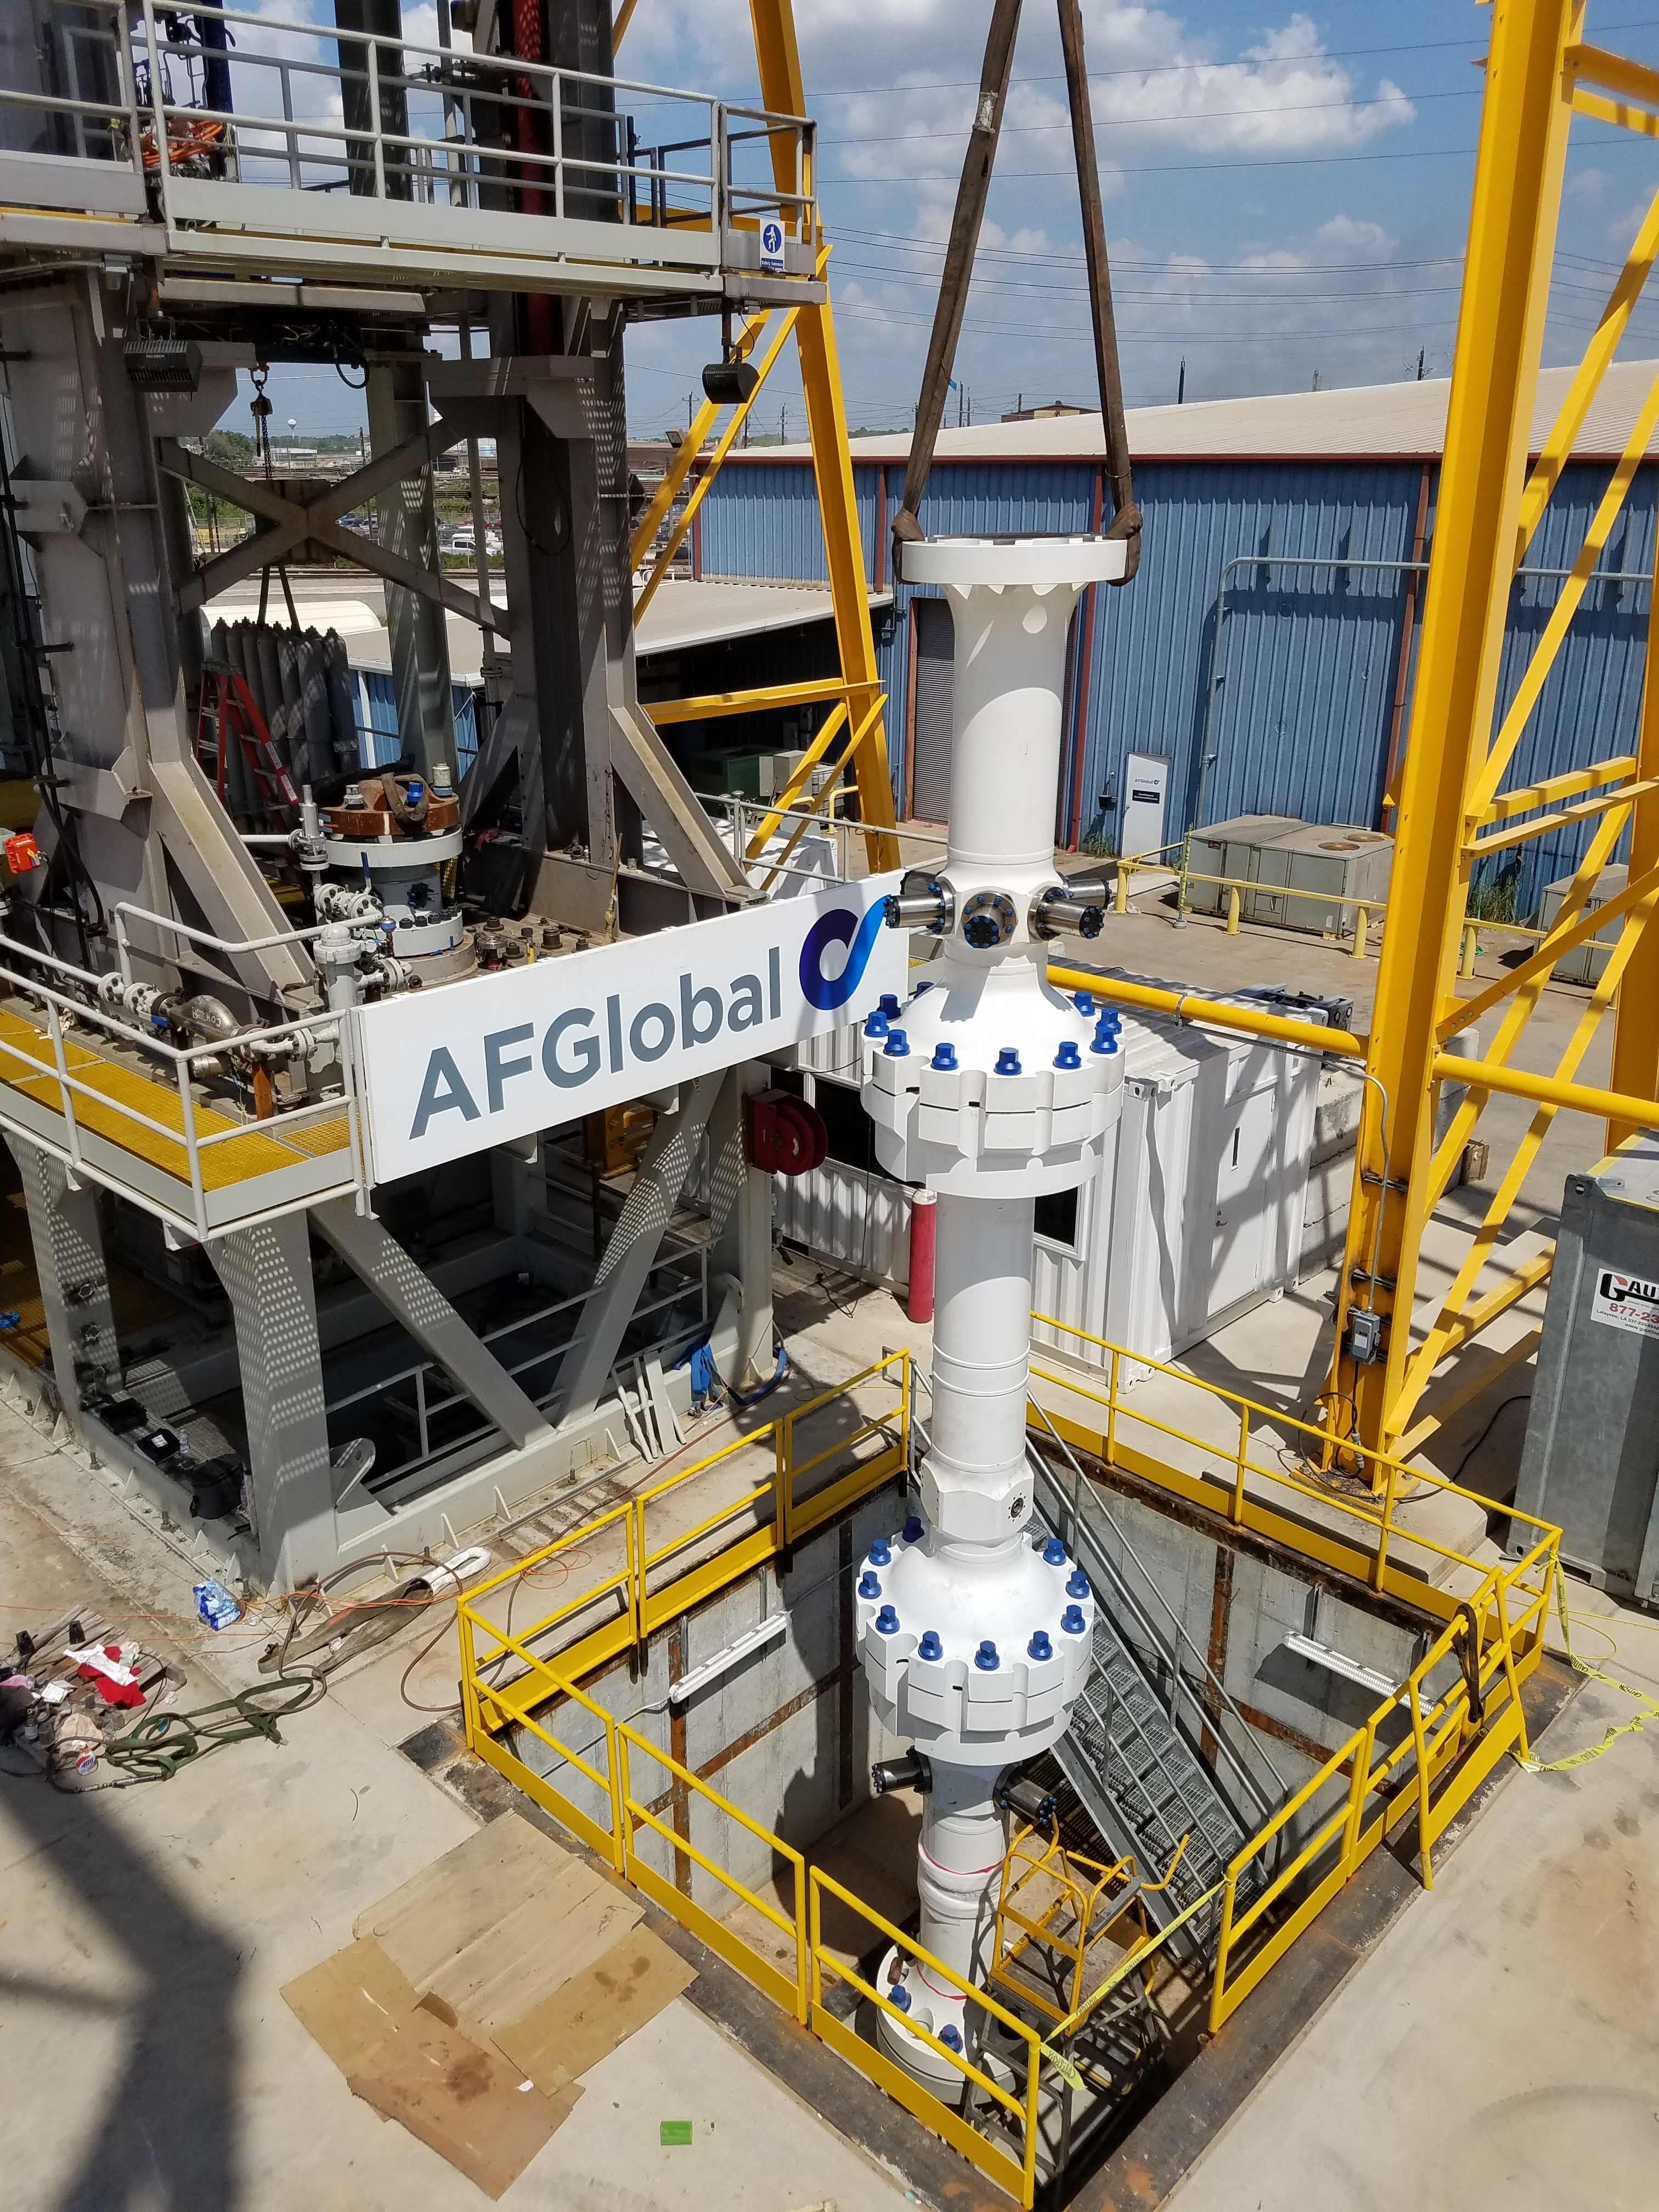 Testing of the ACD system was done at AFGlobal's purpose-built, full-scale test rig facility that simulates offshore drilling conditions by enabling simultaneous rotation and reciprocation with dynamic movement of the drillpipe mandrel. (Source: AFGlobal)